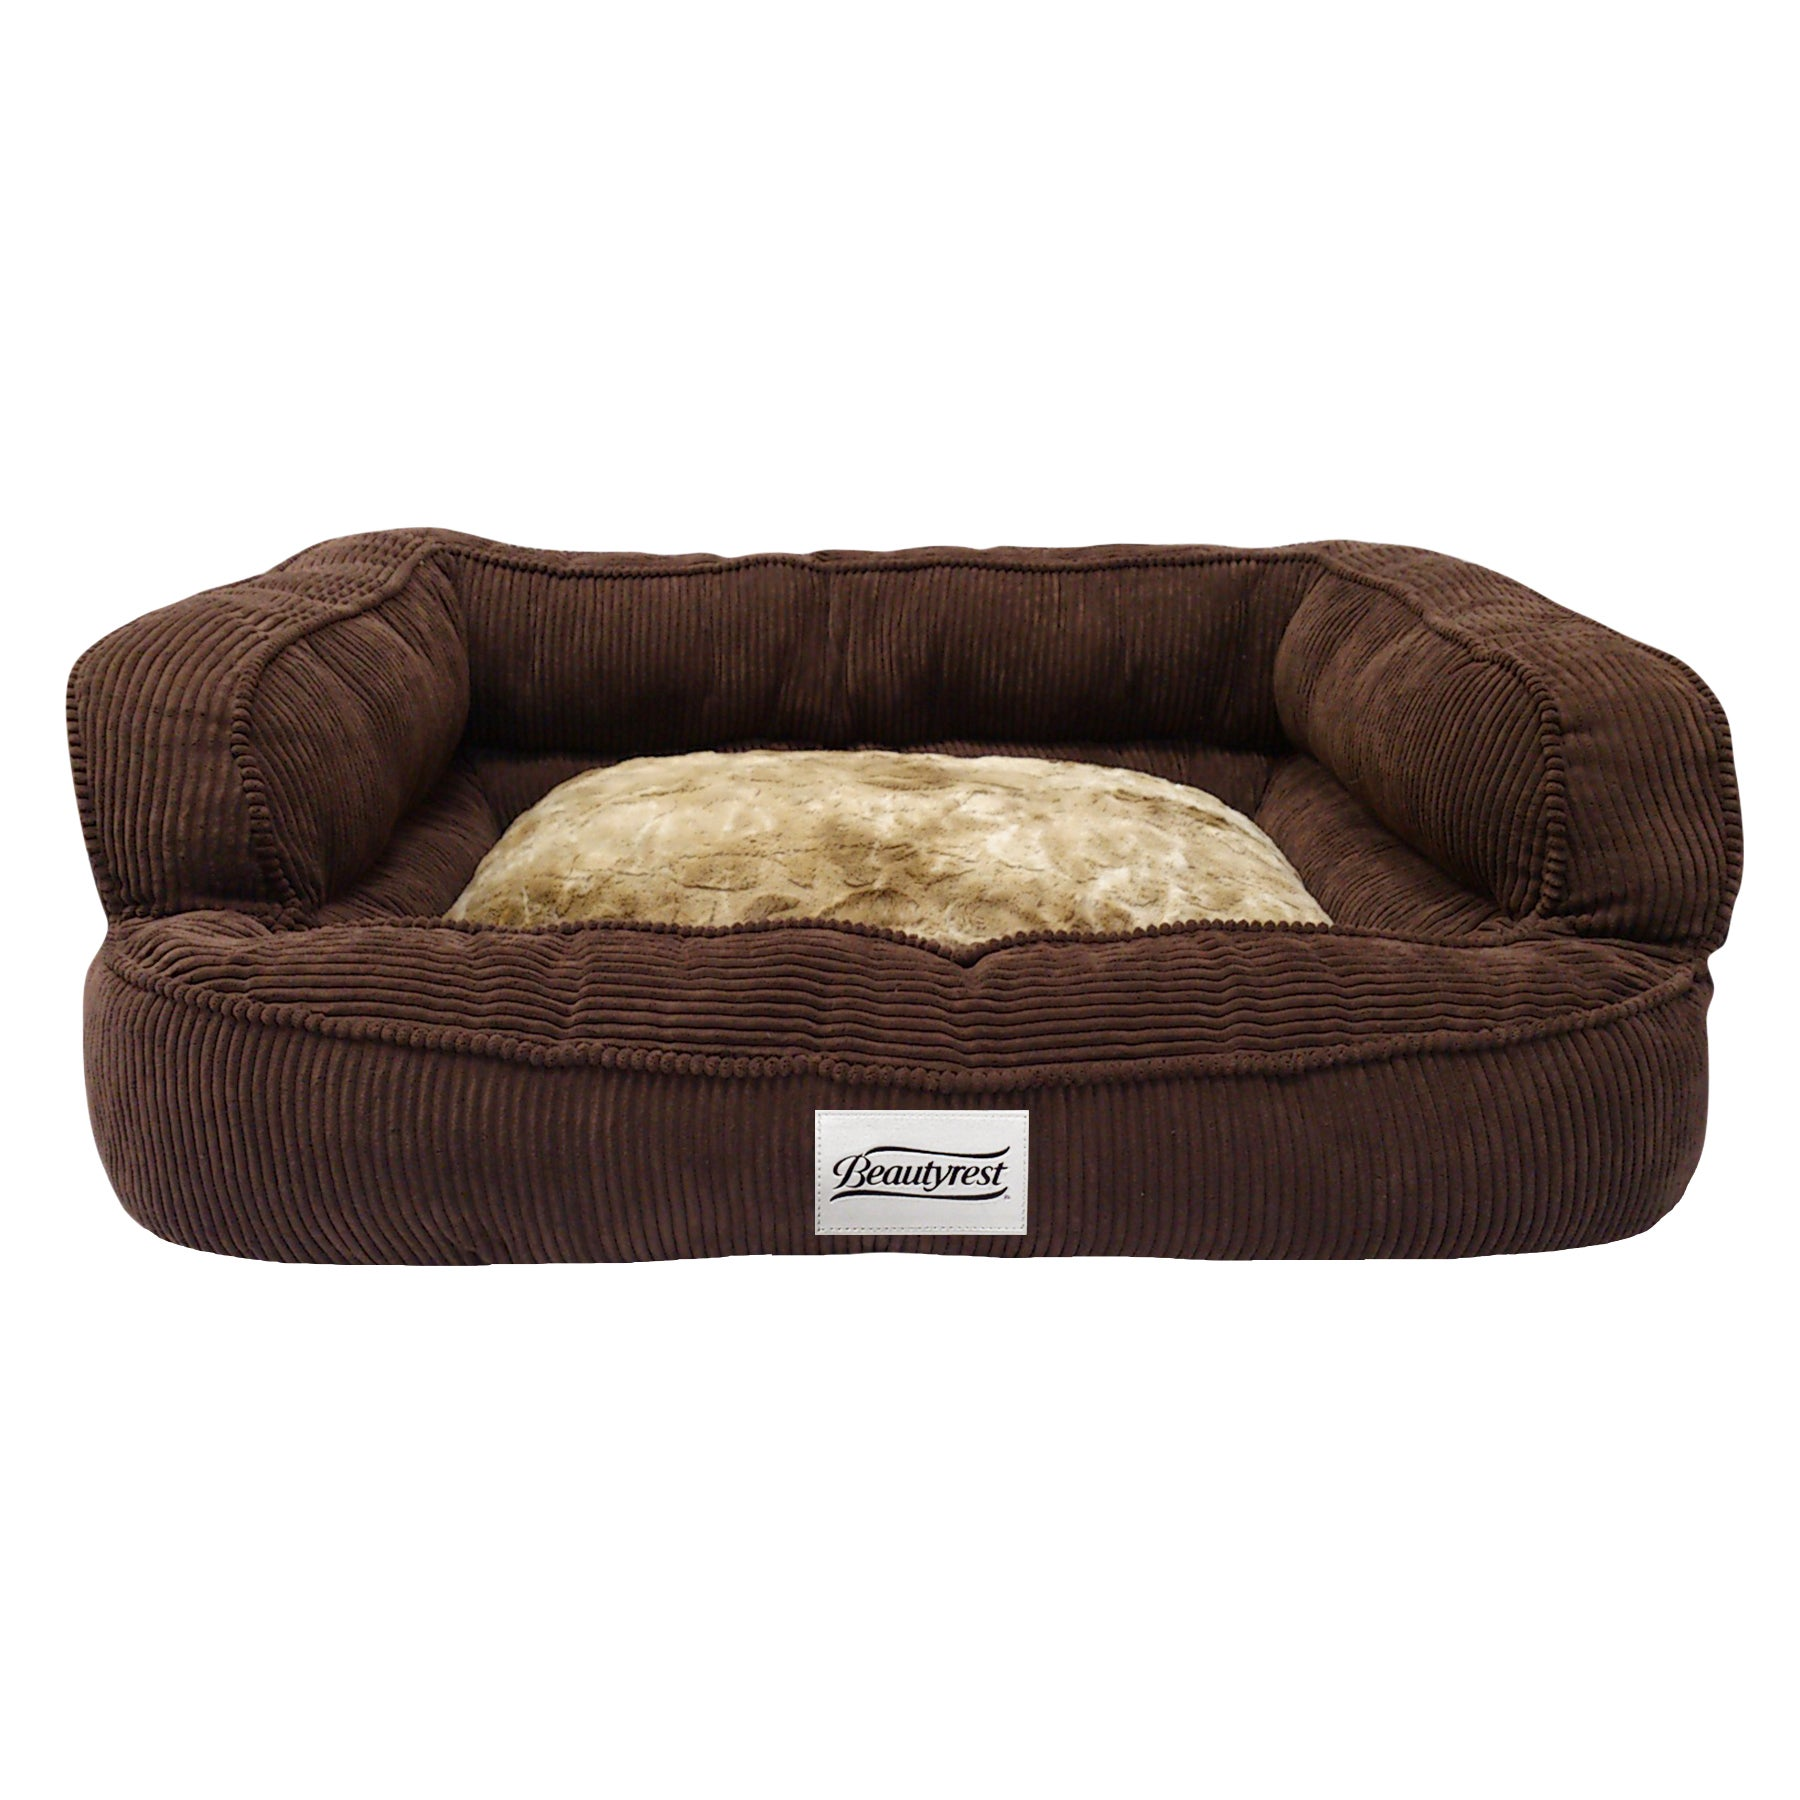 Simmons Beautyrest Beautyrest Colossal Rest Orthopedic Me...